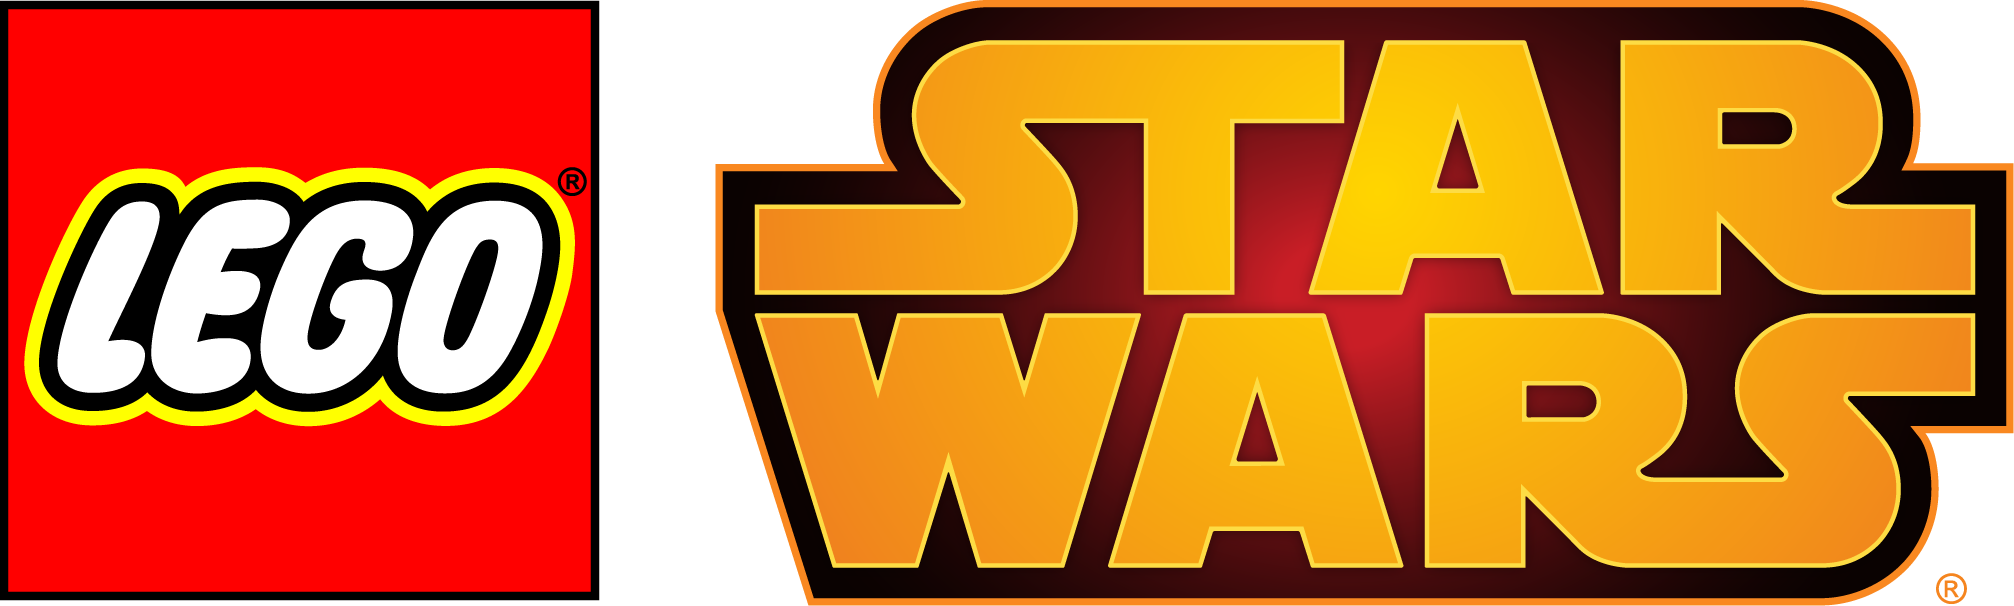 Lego star wars logo clipart graphic 5 New Lego Star Wars Sets Revealed? - Star Wars News Net | Star Wars ... graphic